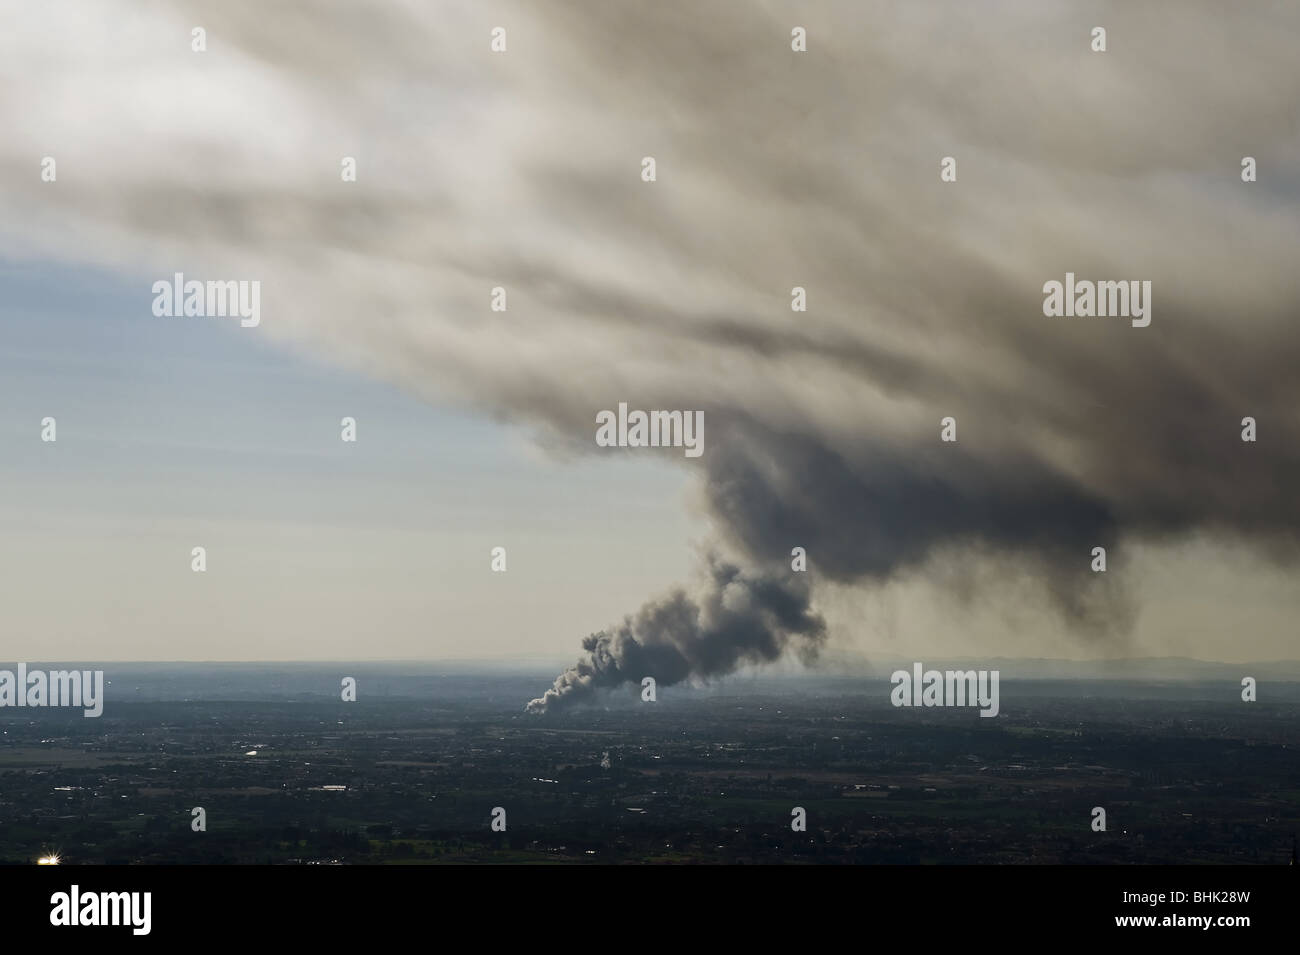 Smoke from a fire in the distance - Stock Image